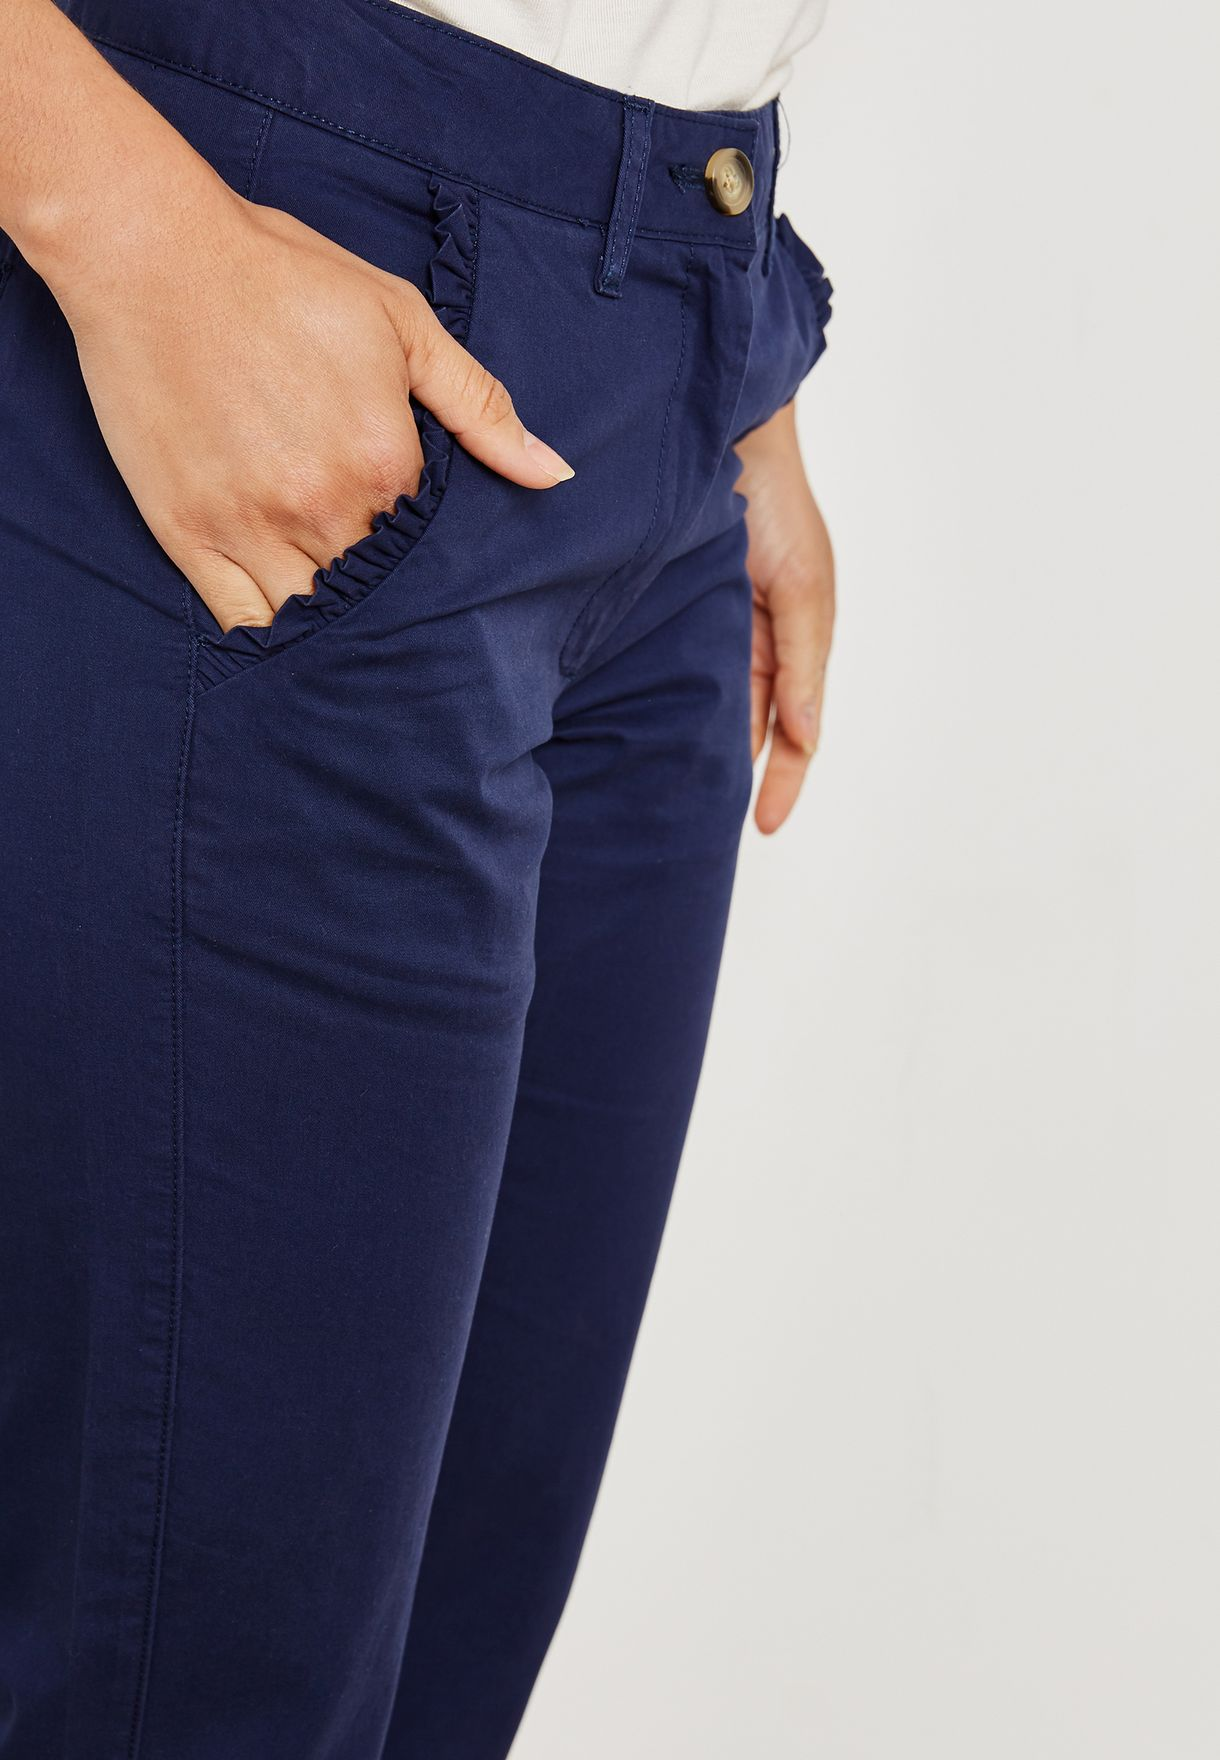 Ruffle Pocket Detail Crop Pants